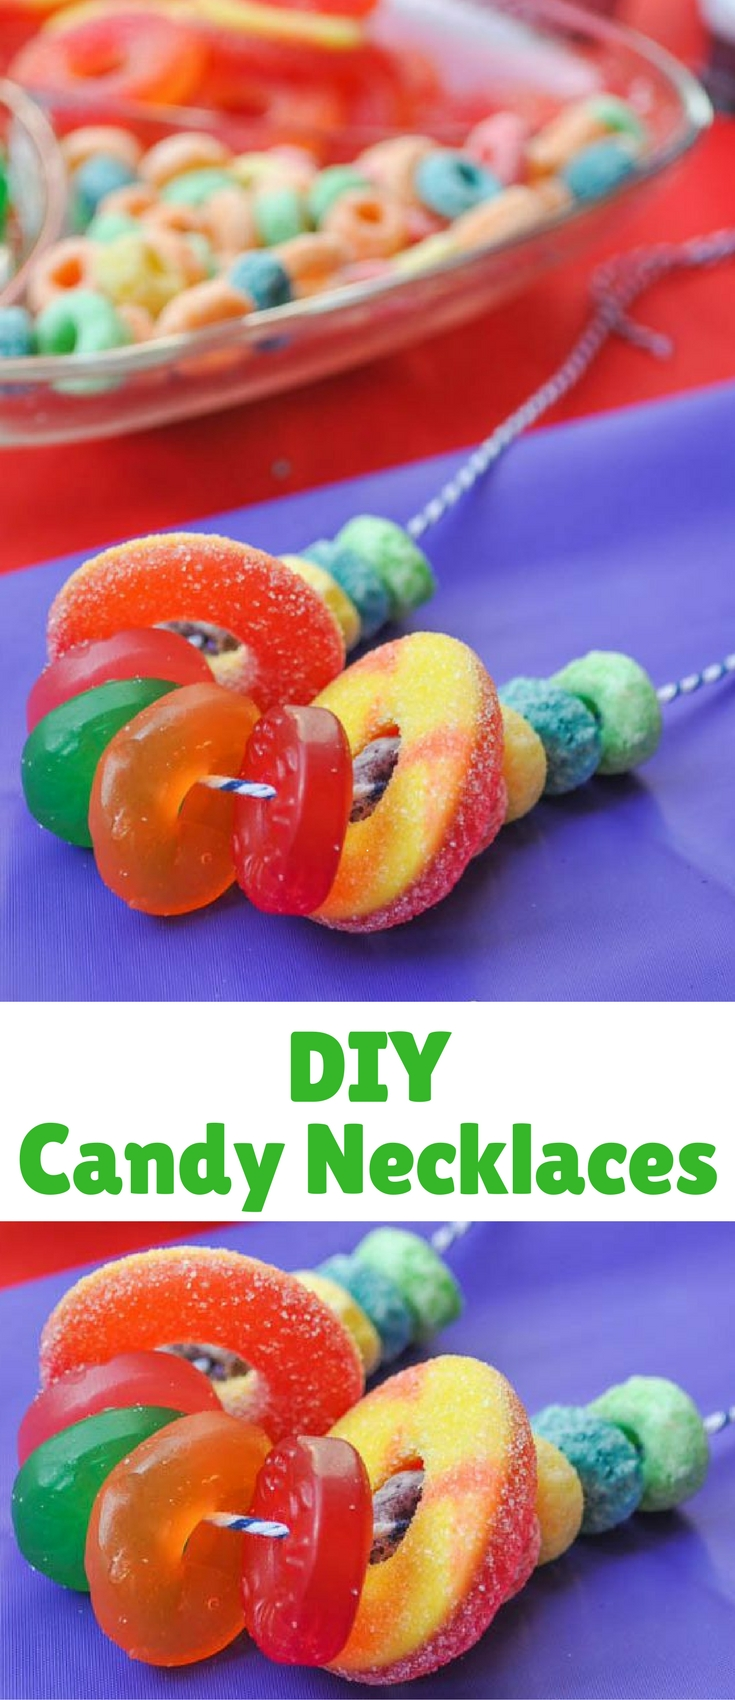 DIY Candy Necklaces felt like the perfect fun, colorful activity to include for an Inside Out Party, especially since all the choices were colorful round circles like the memory balls in the movie.